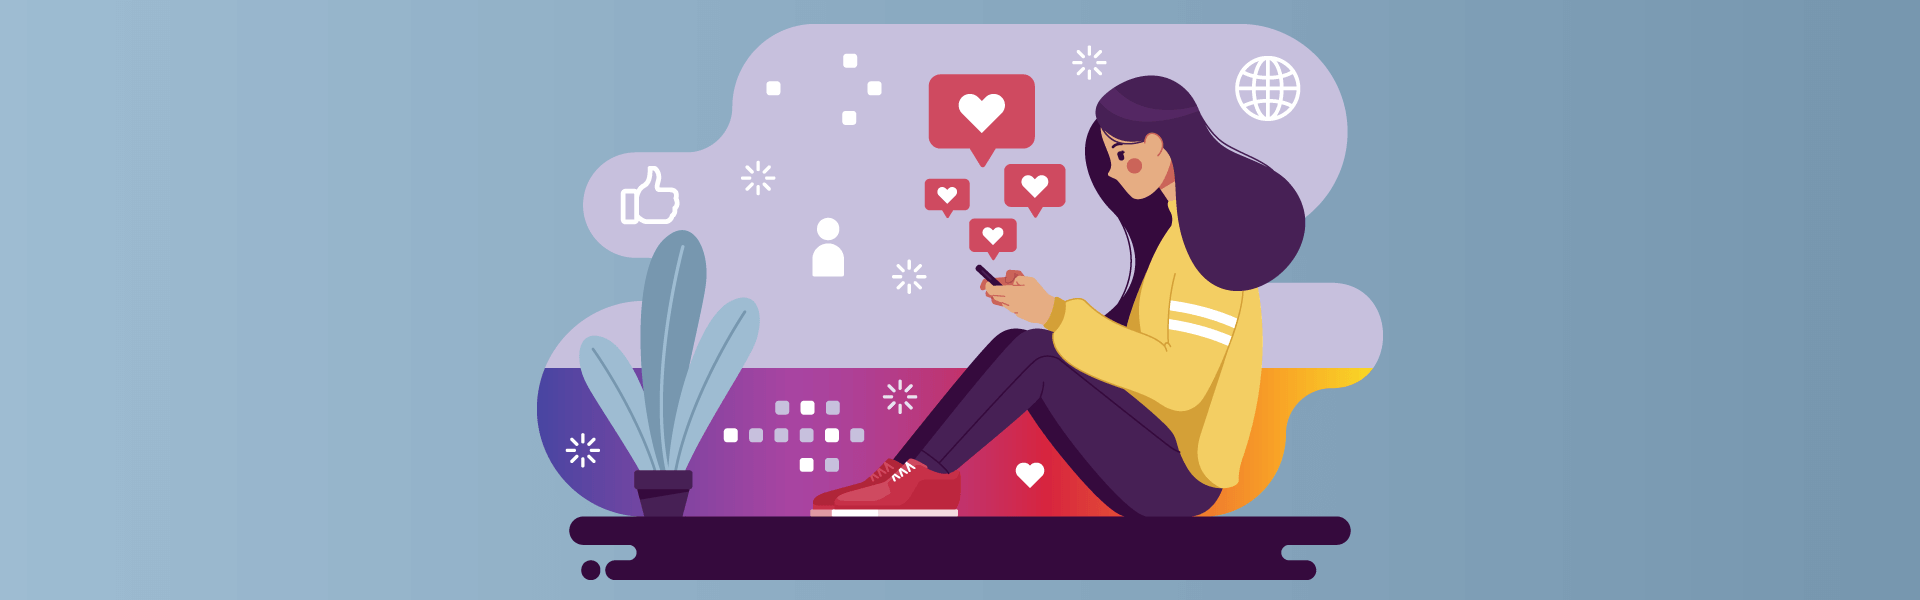 How-to-Create-the-Perfect-Instagram-Profile-Lead-Genera